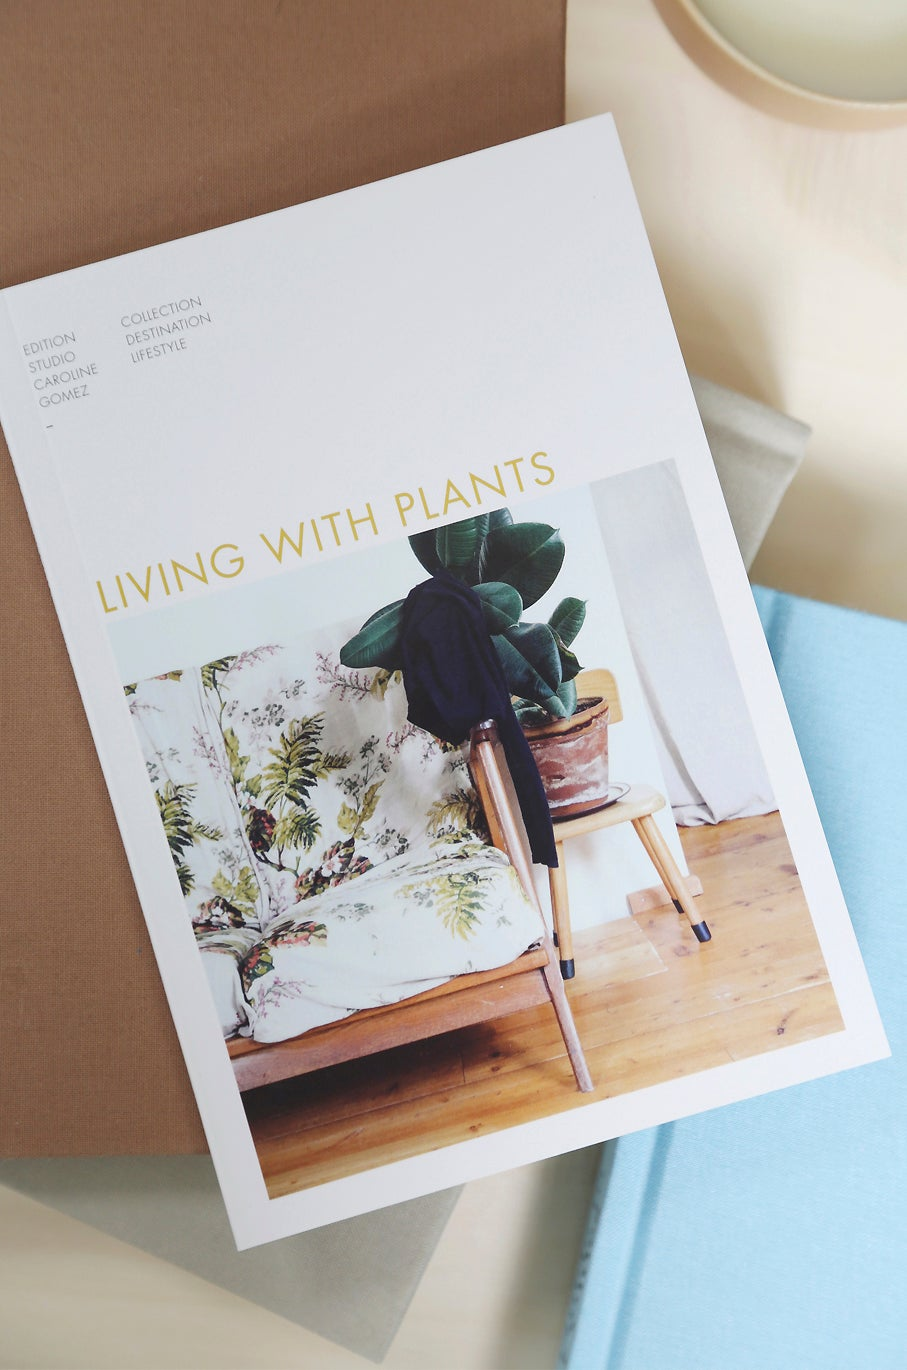 Image of Living with plants